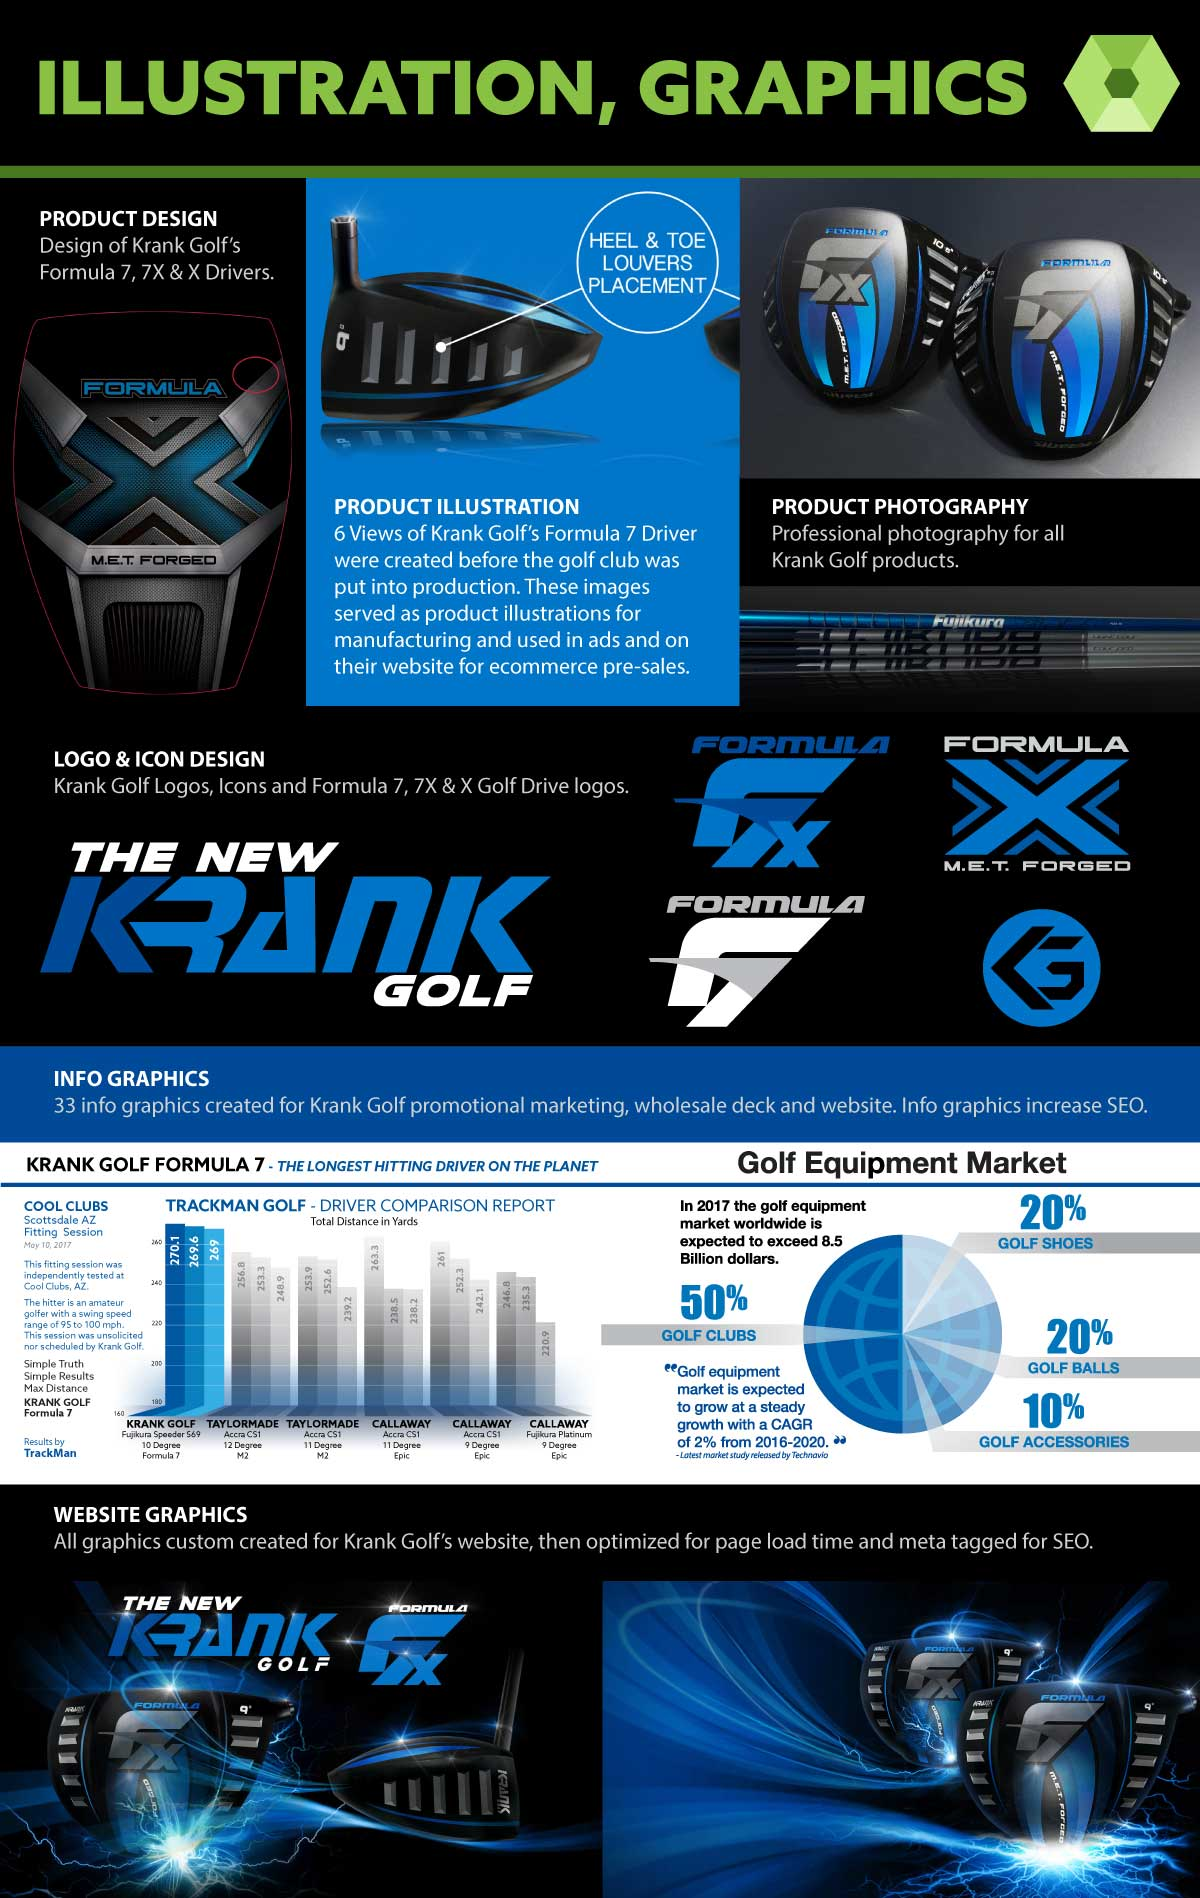 517 Design Krank Golf illustrations and graphics infographic